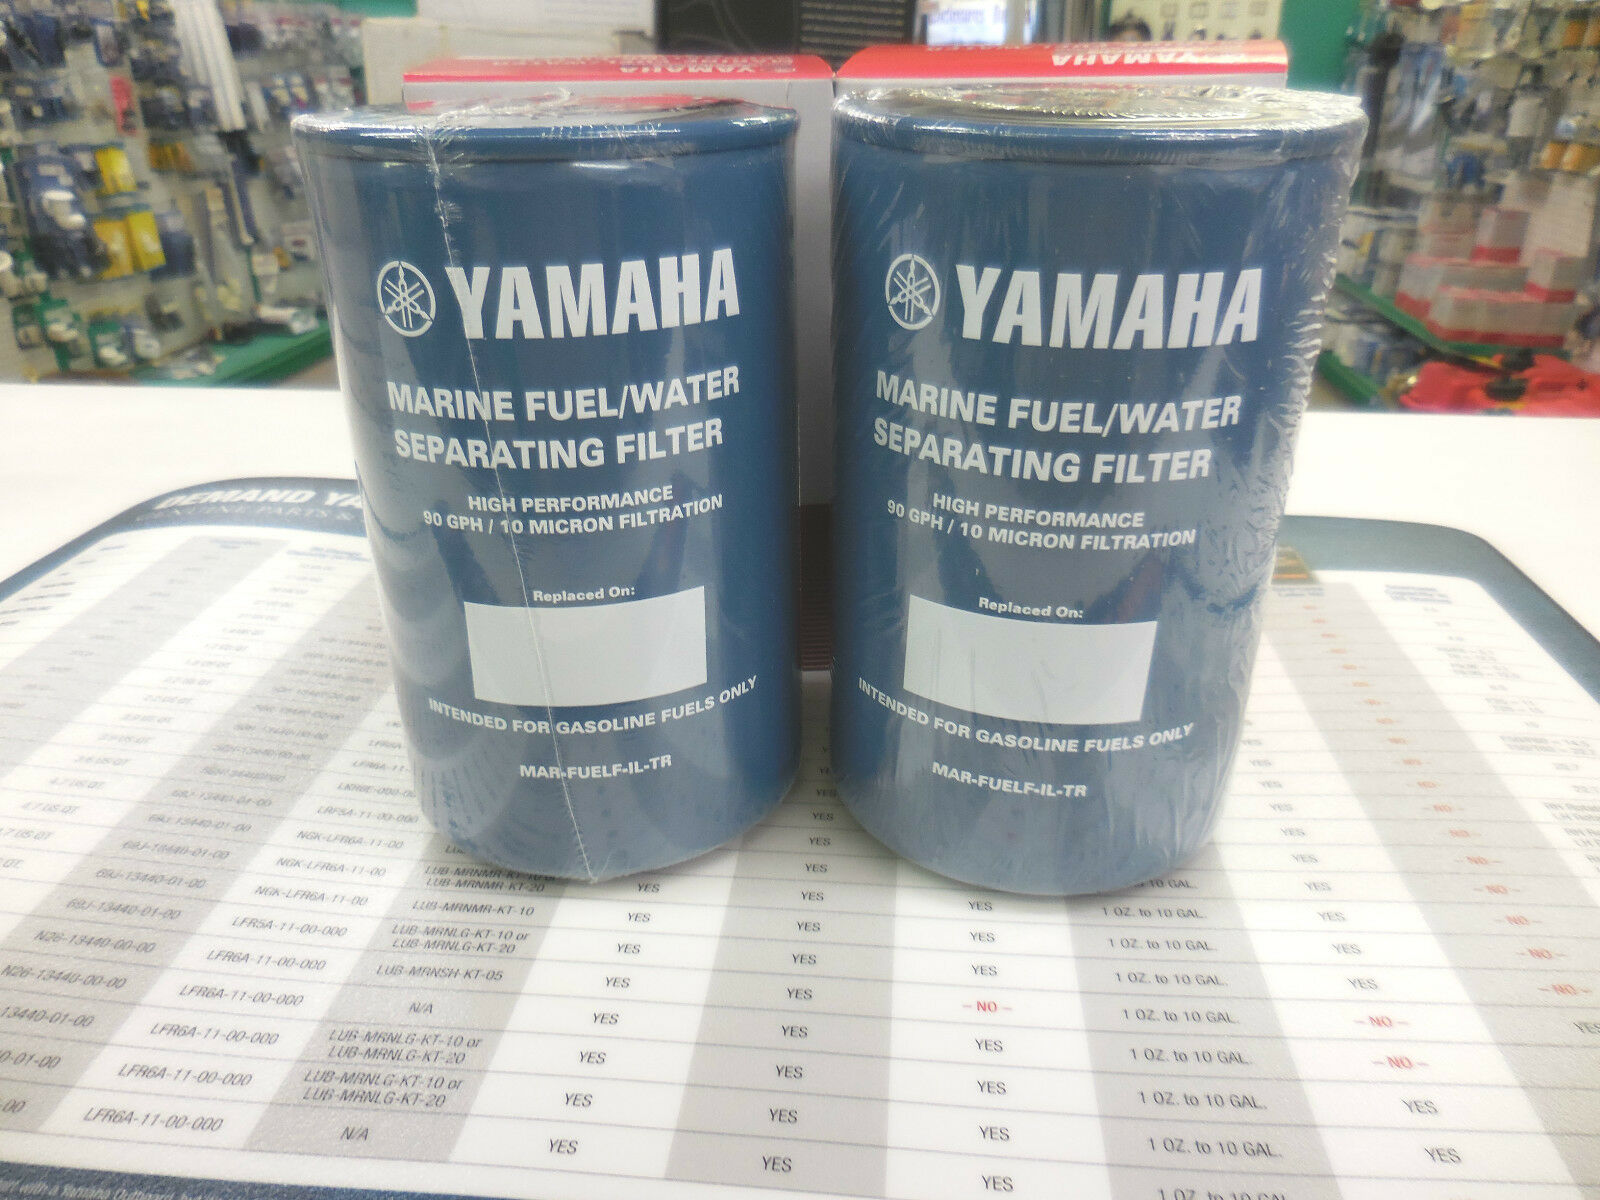 Yamaha Outboard Mar Fuelf Il Tr 10 Micron Fuel Water Separating Filter 90gph